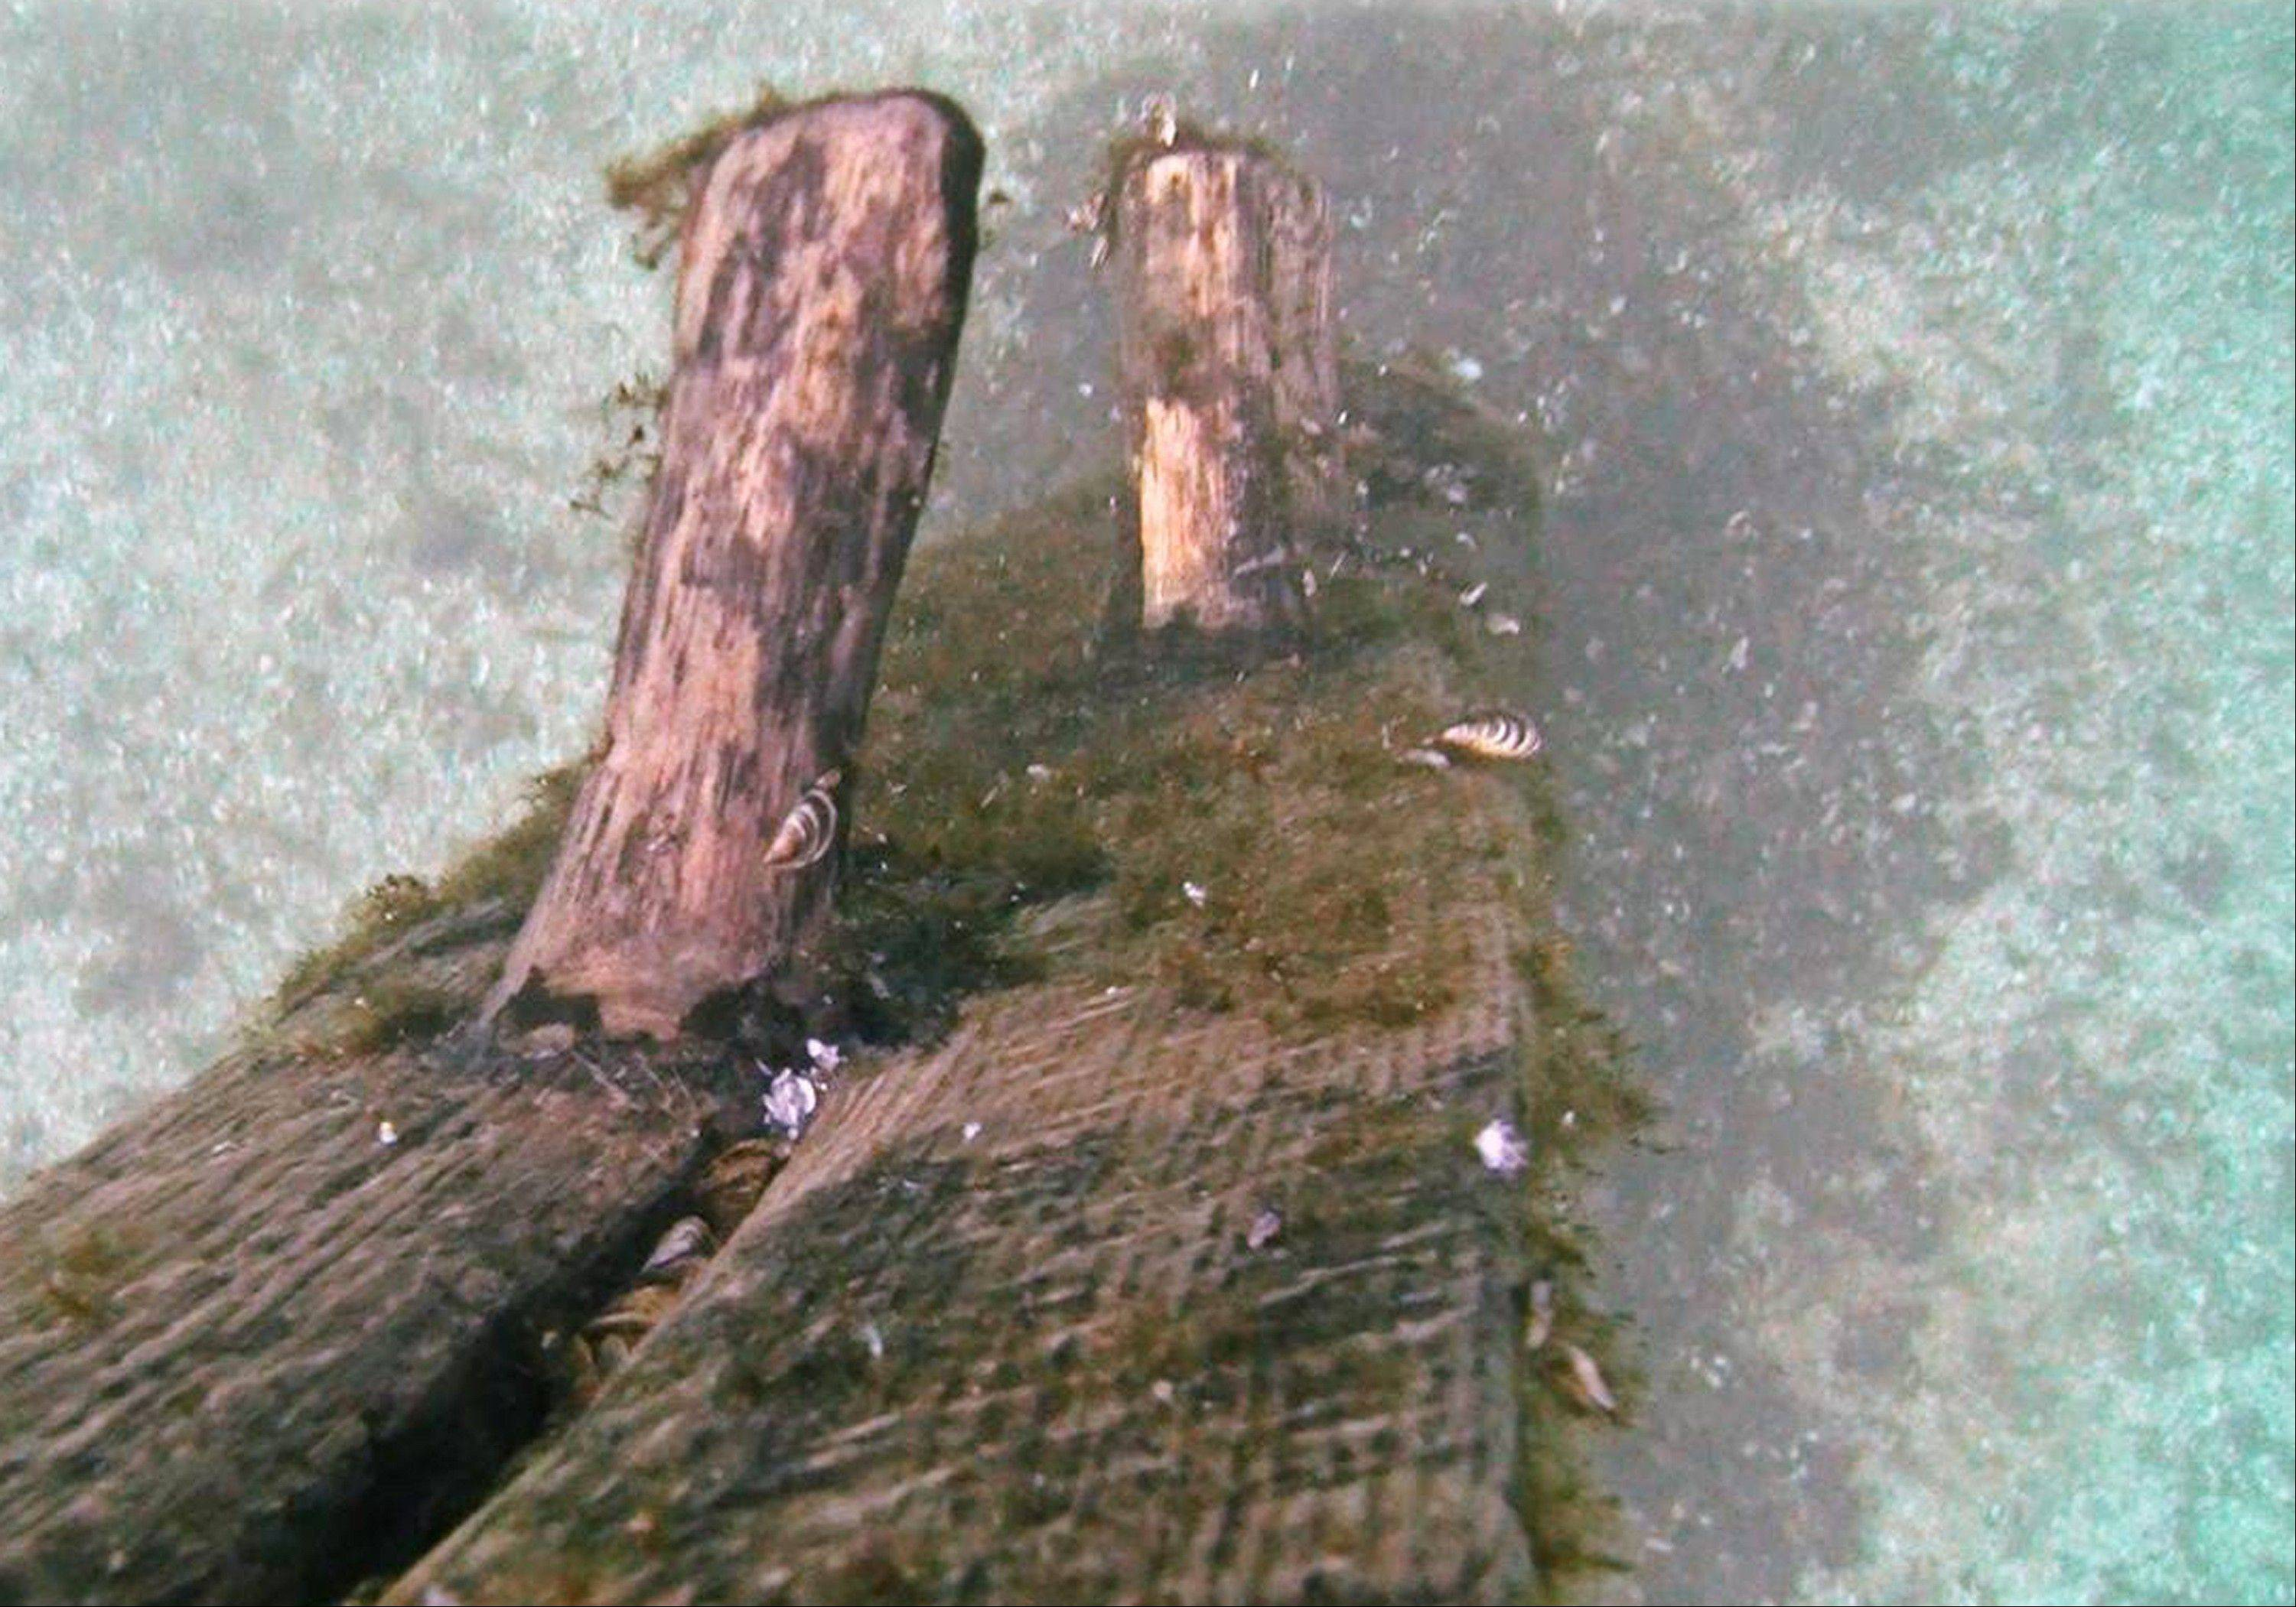 Timbers protruding from the bottom of Lake Michigan could be the remains of the Griffin, a ship built by 17th-century explorer Rene Robert Cavelier de la Salle.